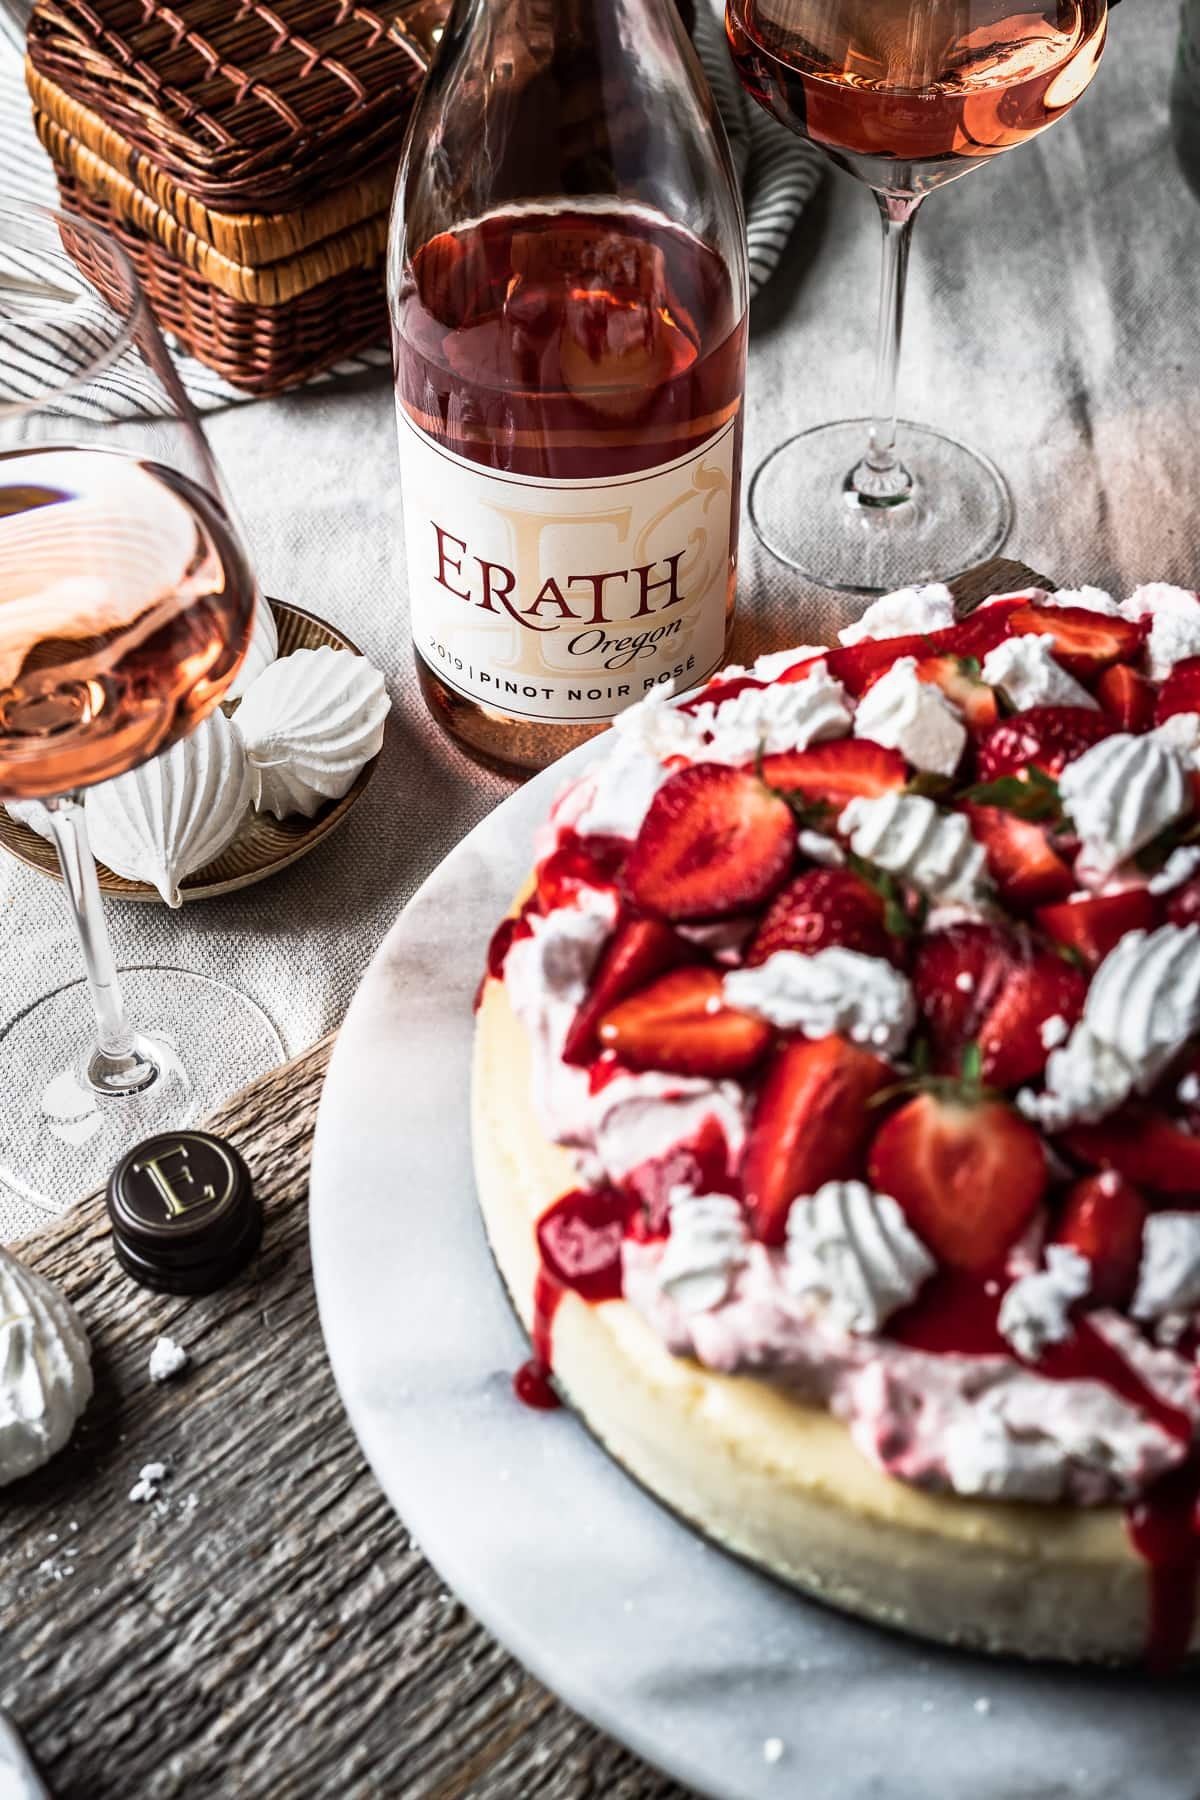 A picnic scene focused a close up of the rosé bottle and the wine in two glasses. An out of focus strawberry cheesecake peeks into the foreground.